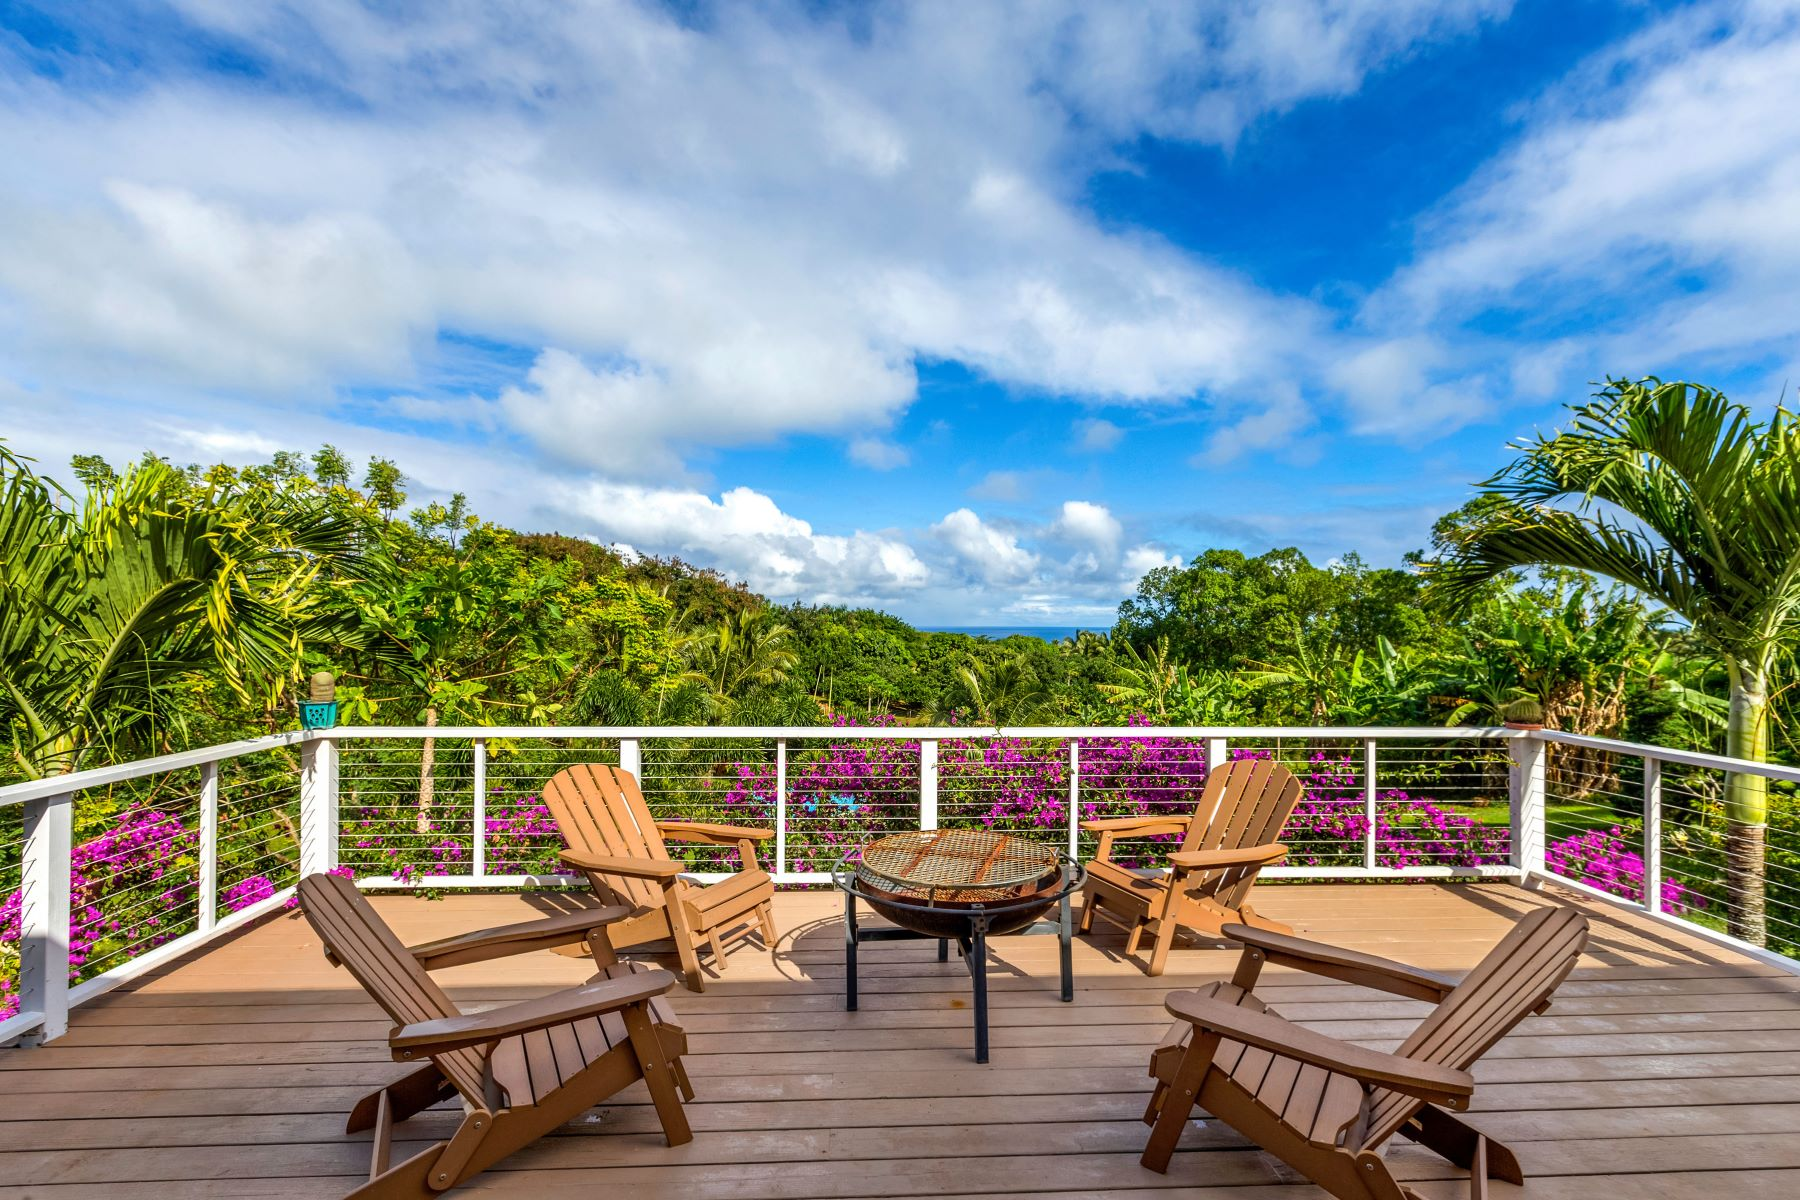 Single Family Home for Sale at 4290 Kapuna Rd. #C Kilauea, HI 96754 4290 Kapuna Rd. #C Kilauea, Hawaii 96754 United States